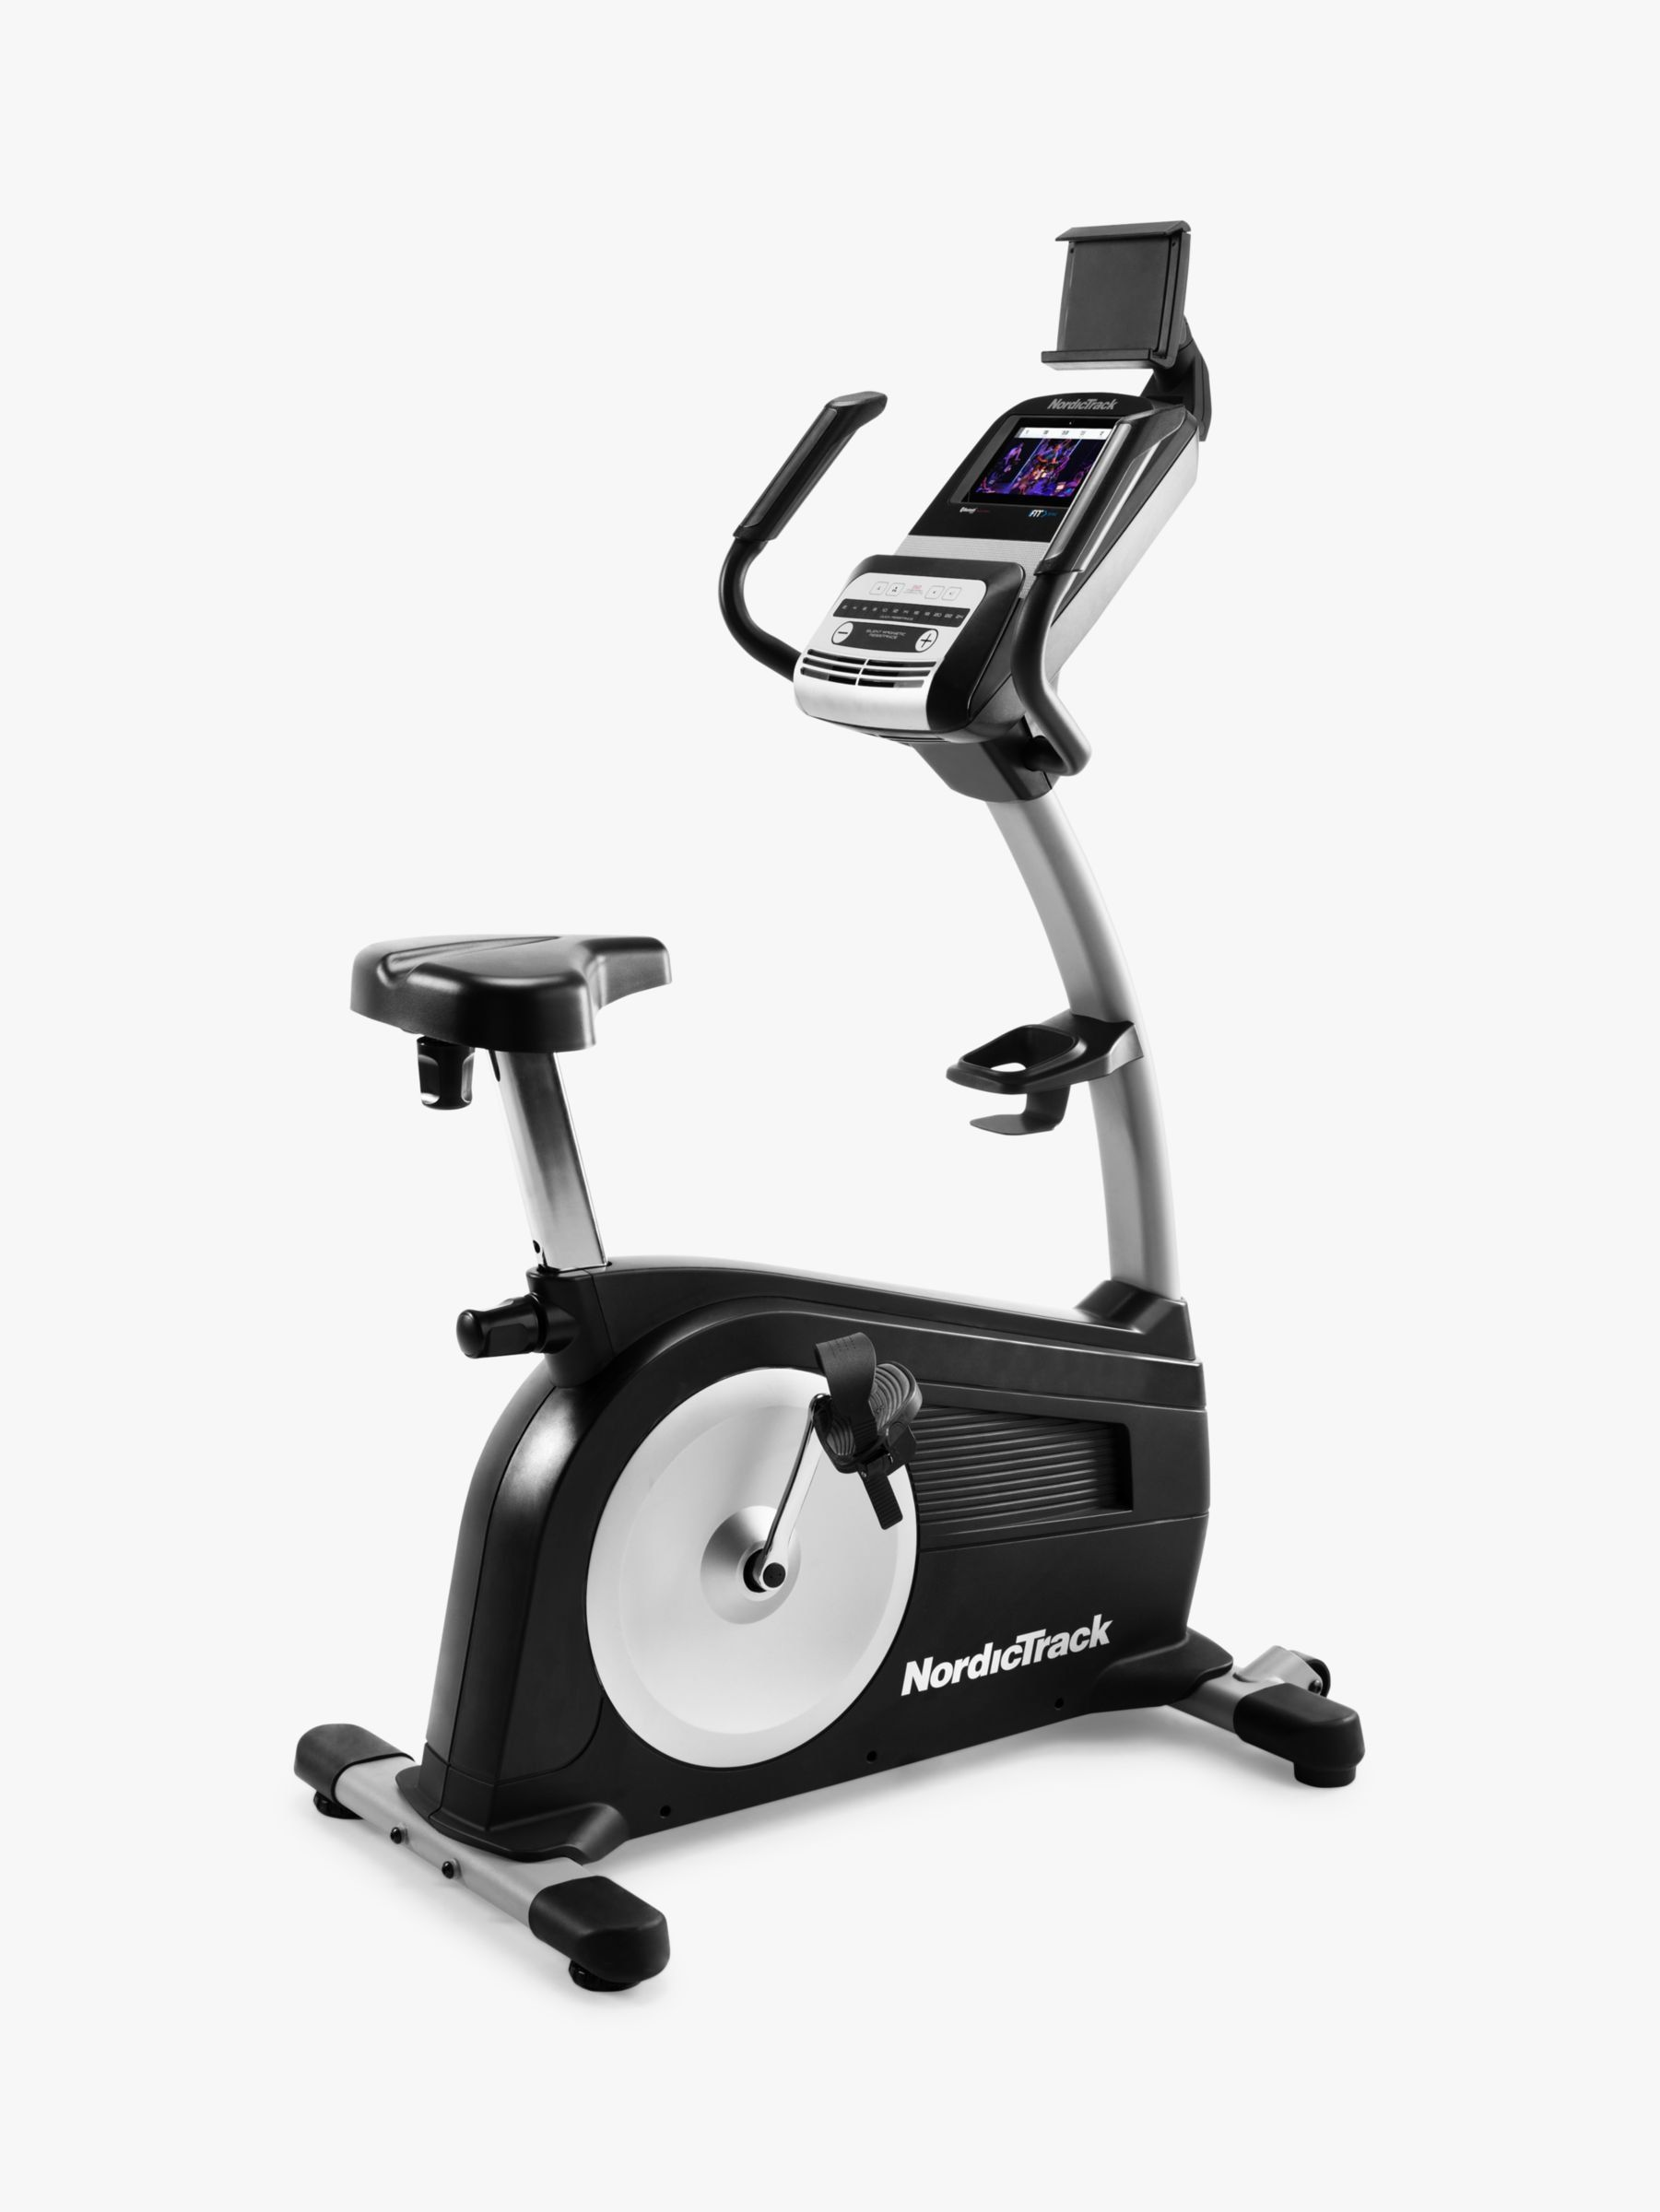 Nordictrack Gx4 6 Pro Exercise Bike Bike Exercise At Home Workouts